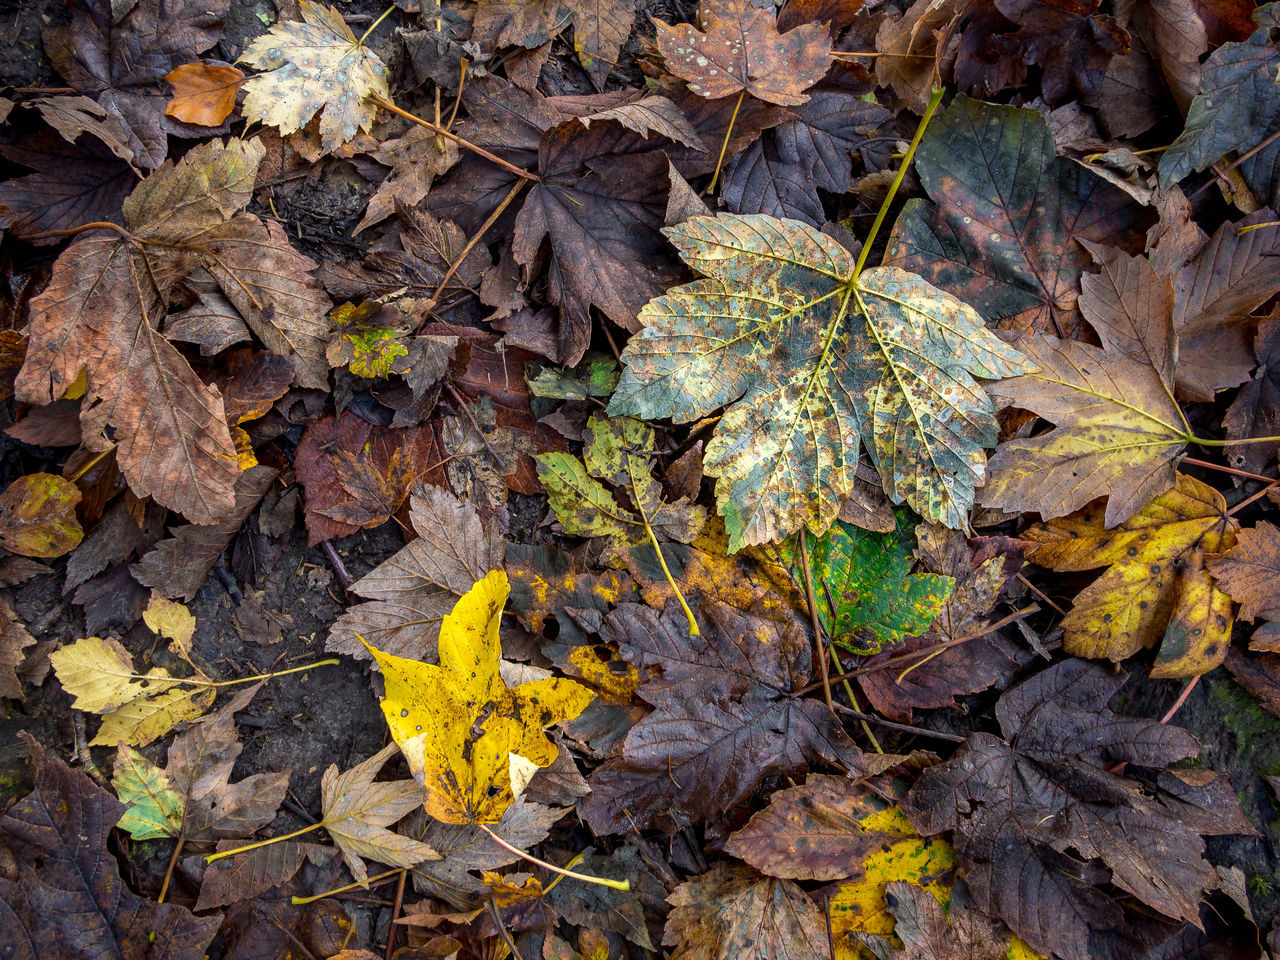 leaf, plant part, autumn, change, leaves, day, nature, high angle view, no people, falling, close-up, dry, yellow, maple leaf, plant, beauty in nature, outdoors, vulnerability, directly above, fragility, natural condition